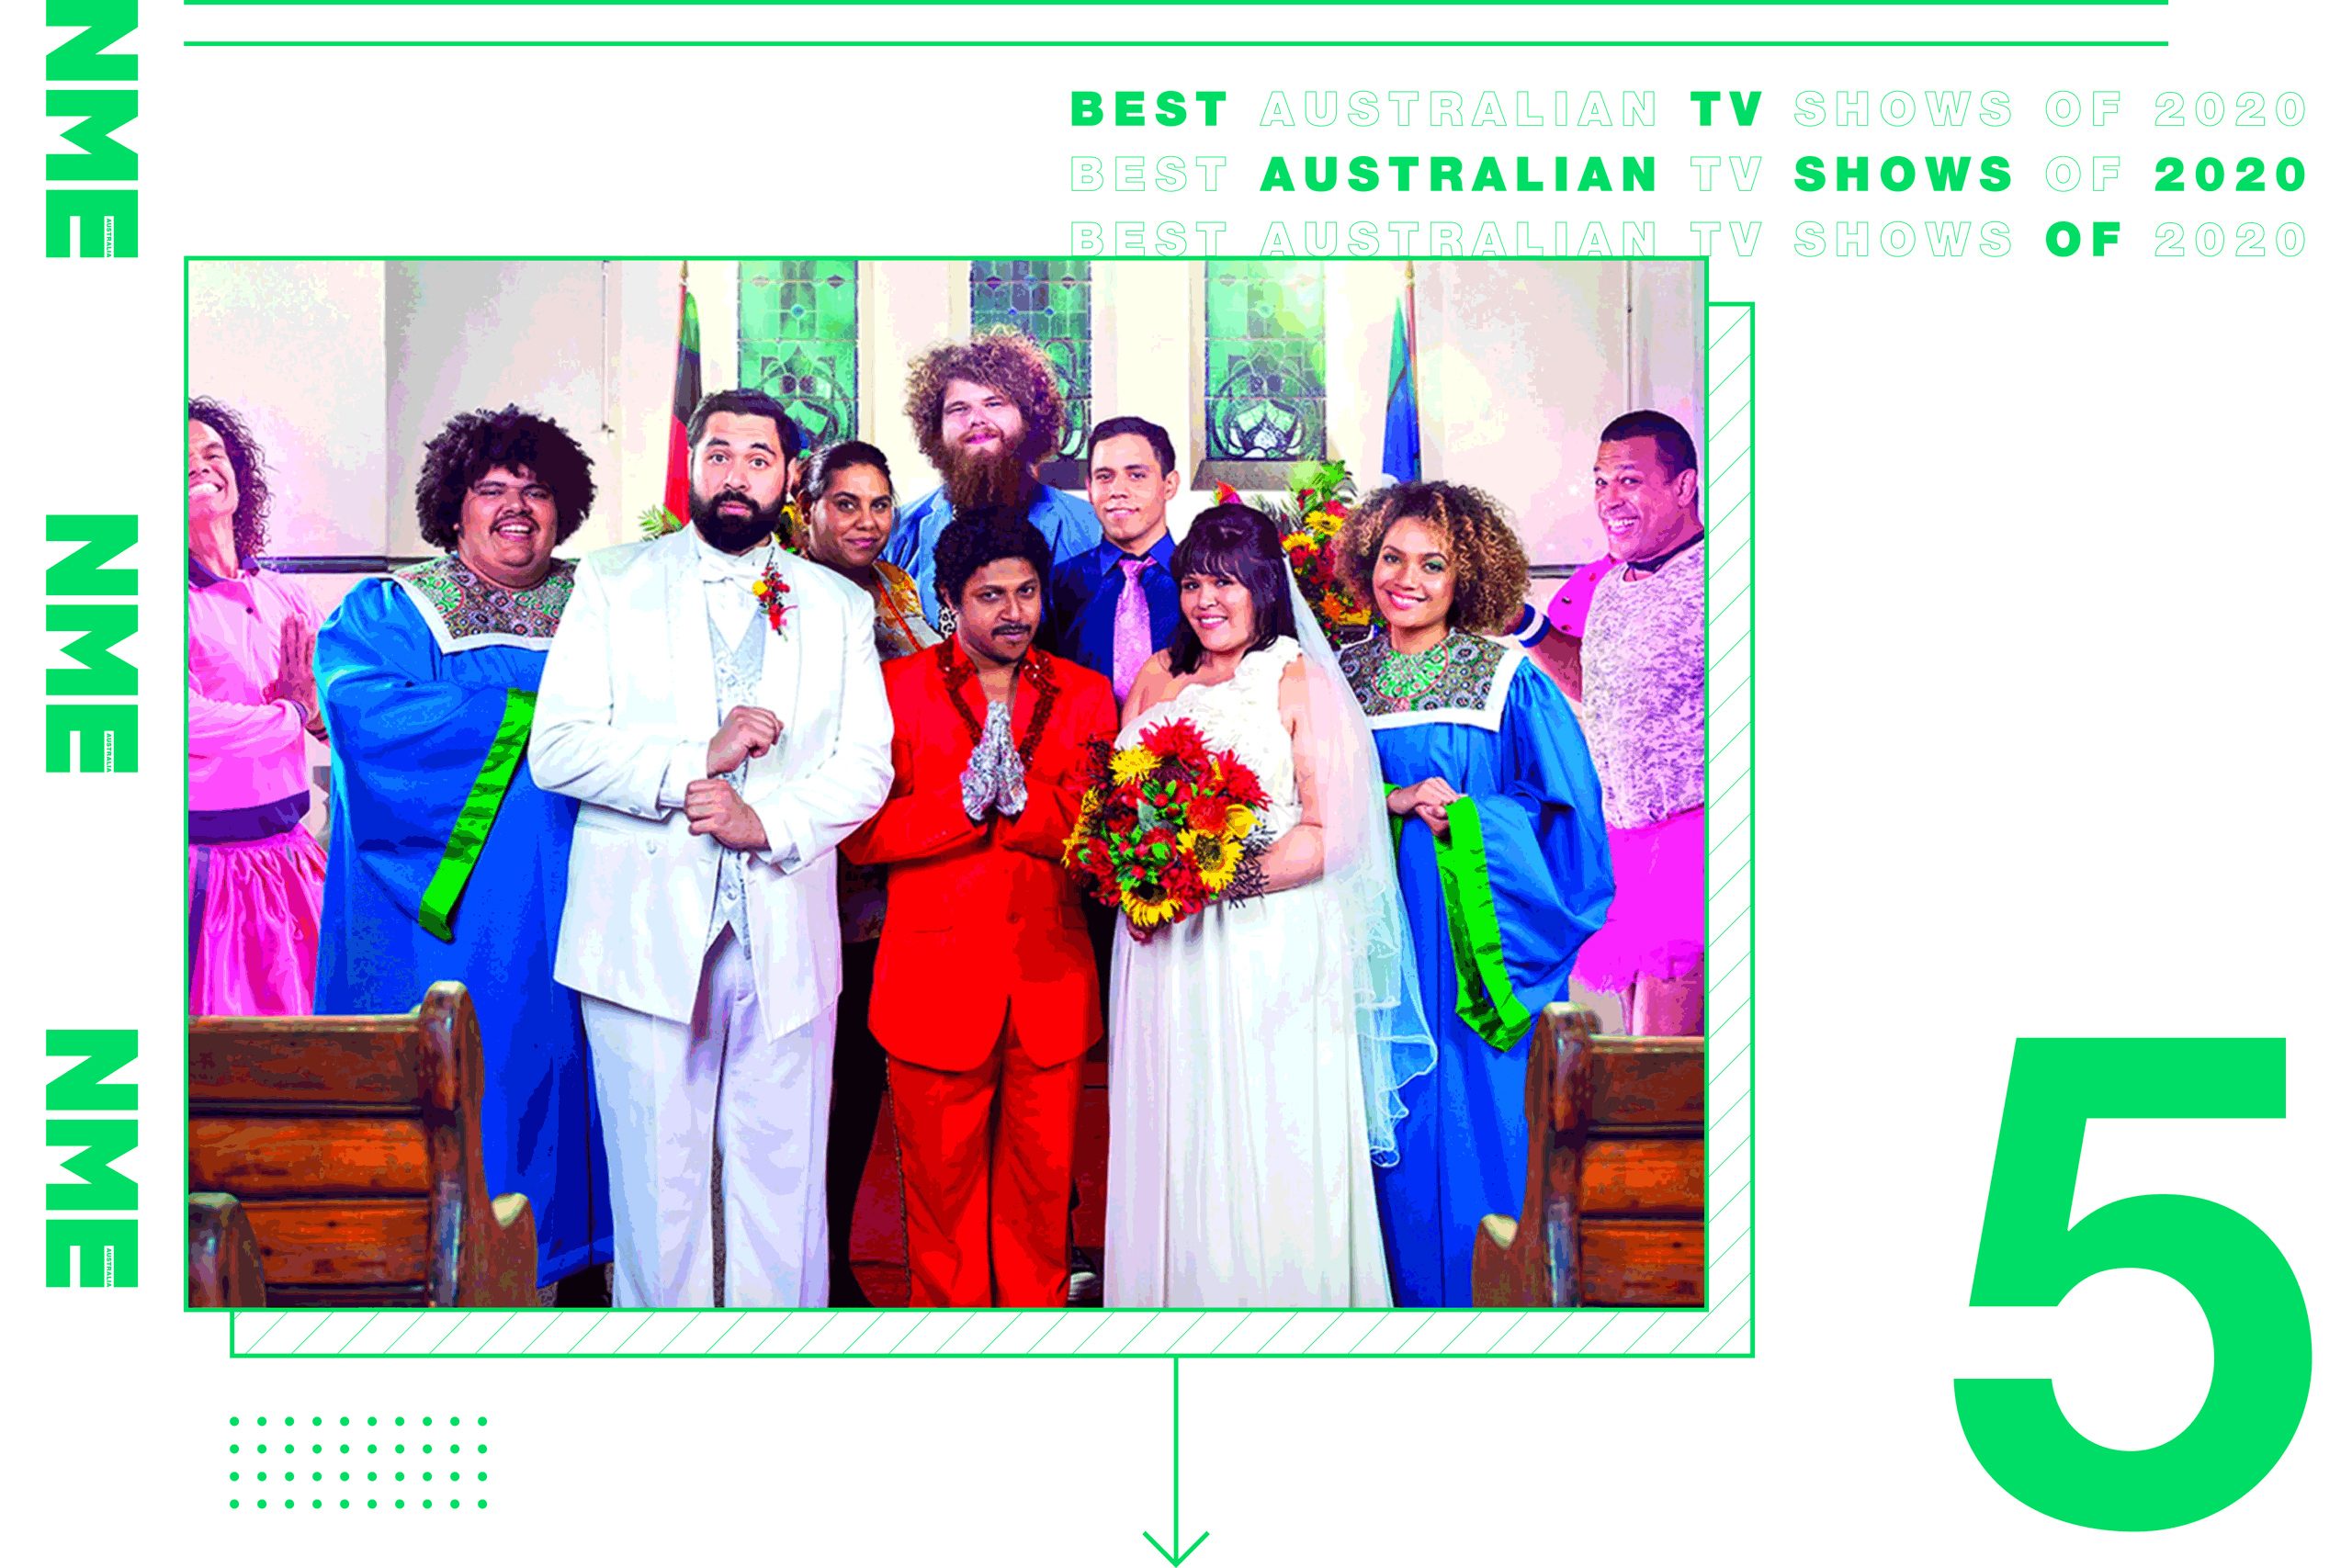 NME Australia TV Shows Of The Year, Black Comedy